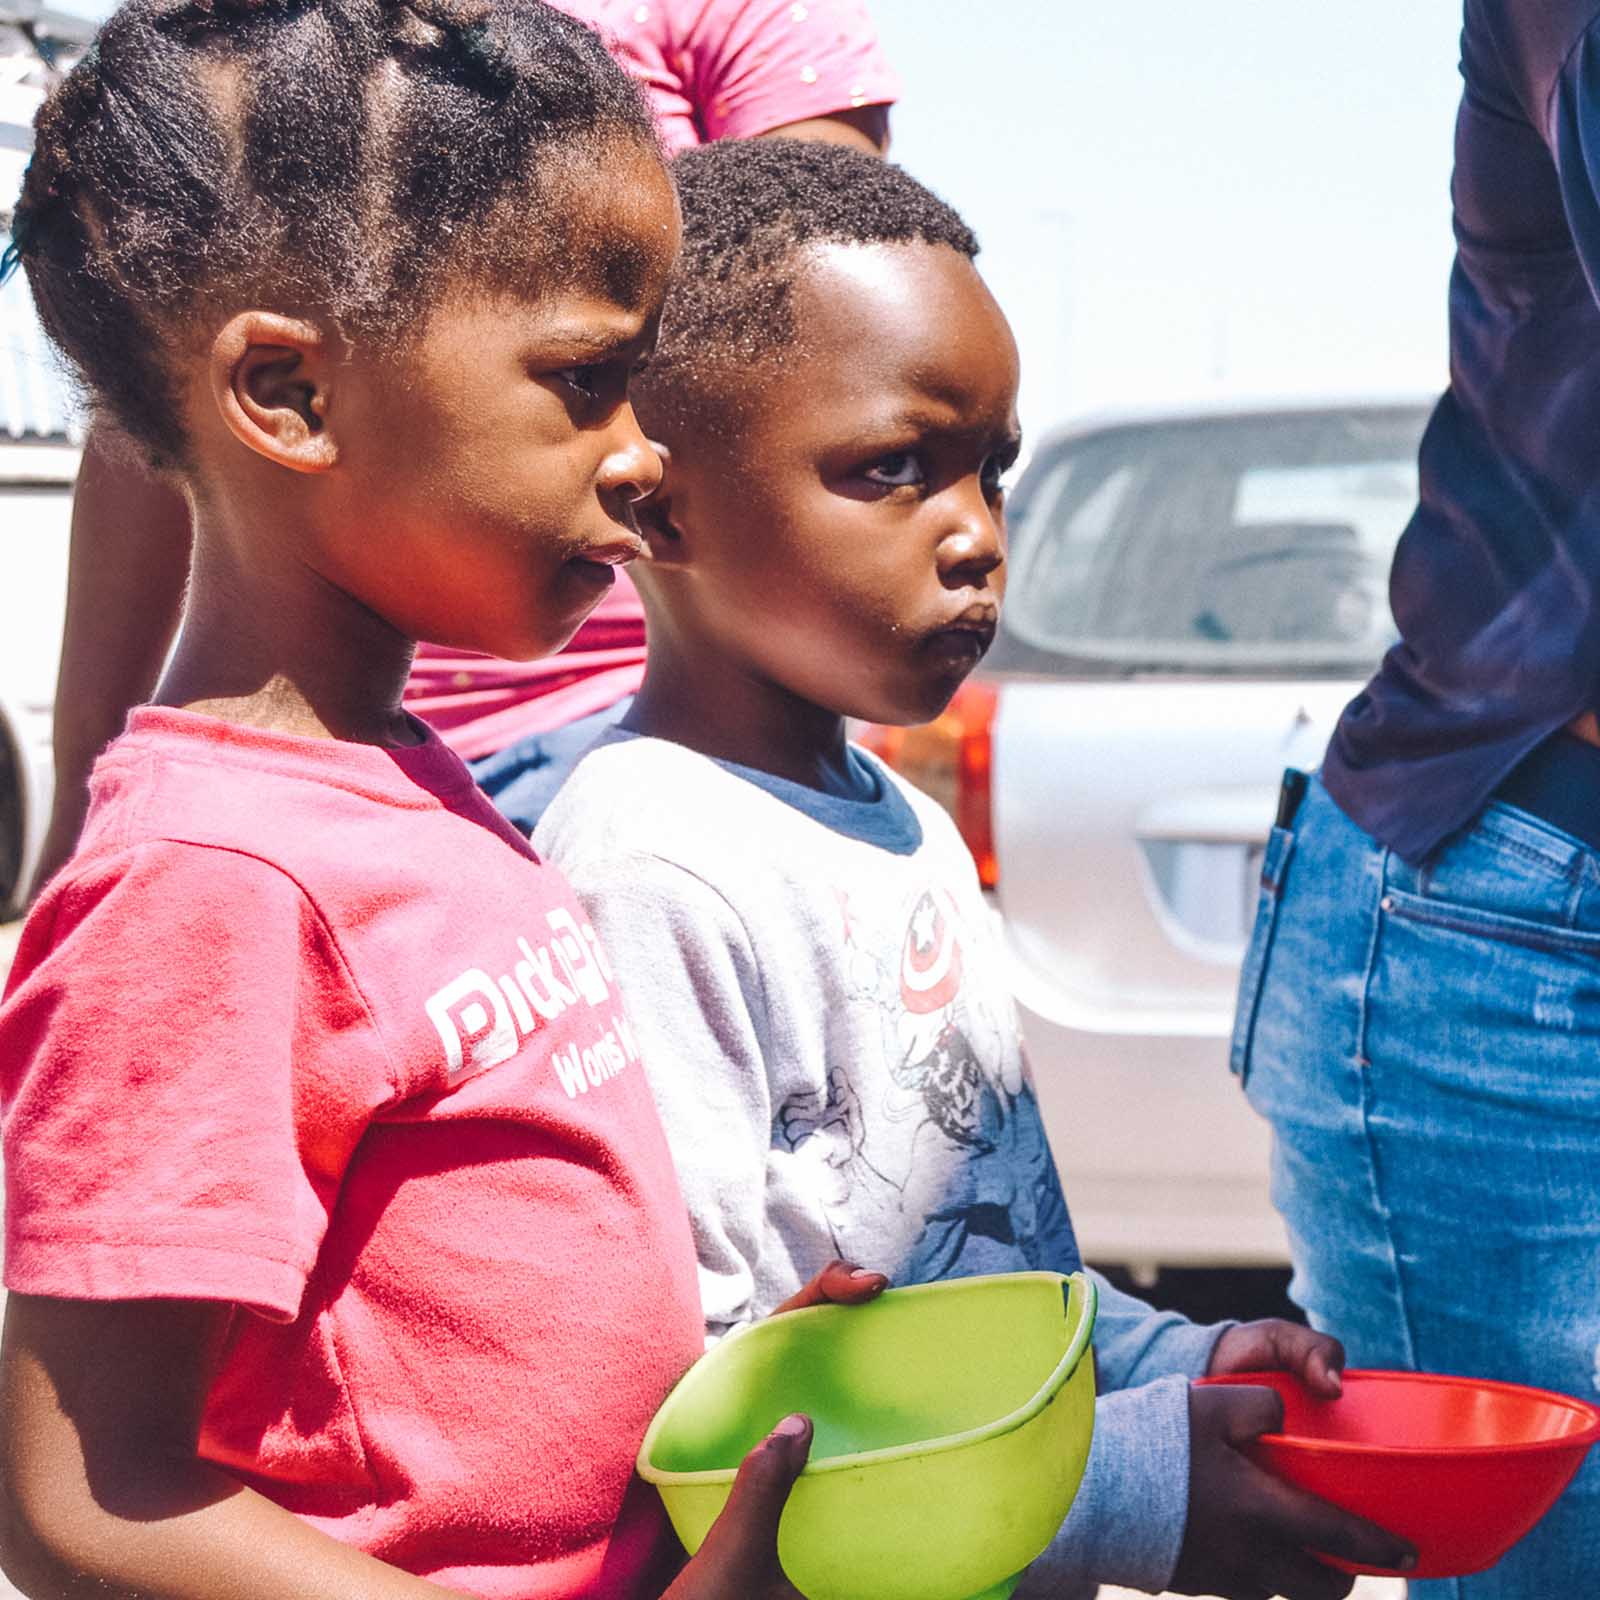 two children standing in line at a soup kitchen with their bowls waiting to be served to show why we must end malnutrition in children